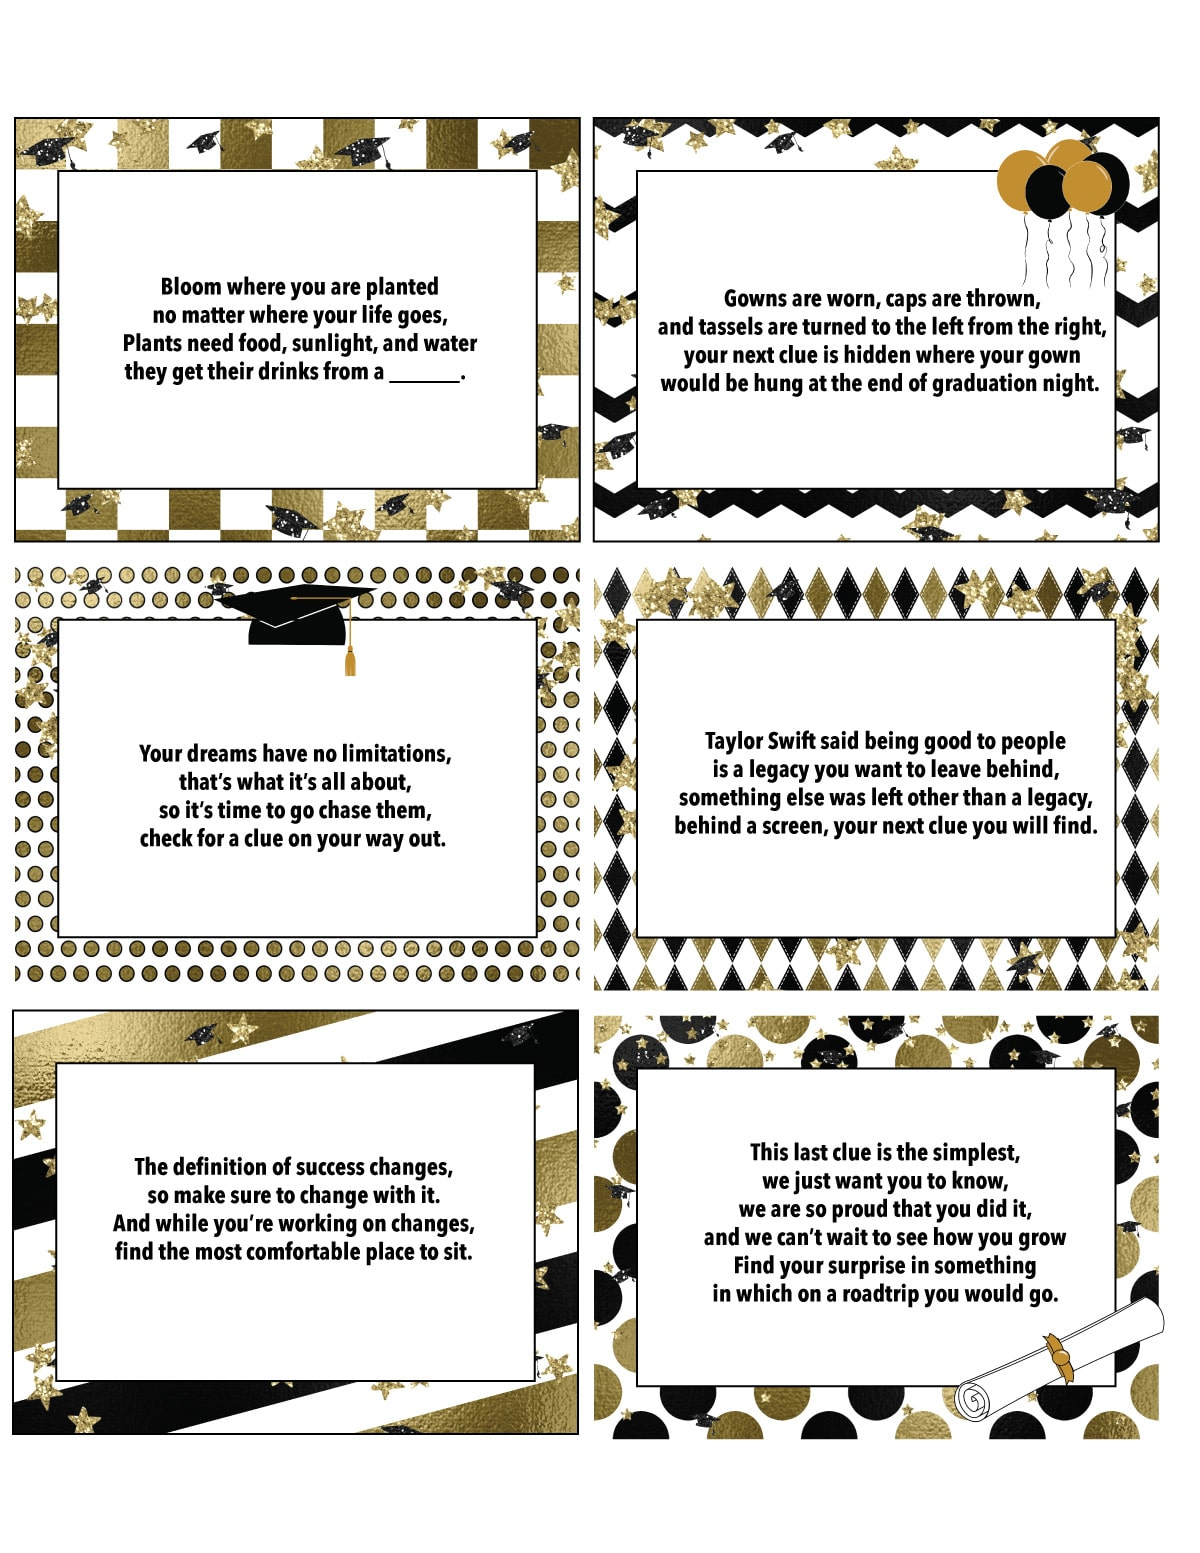 printable graduation scavenger hunt clues on a white background